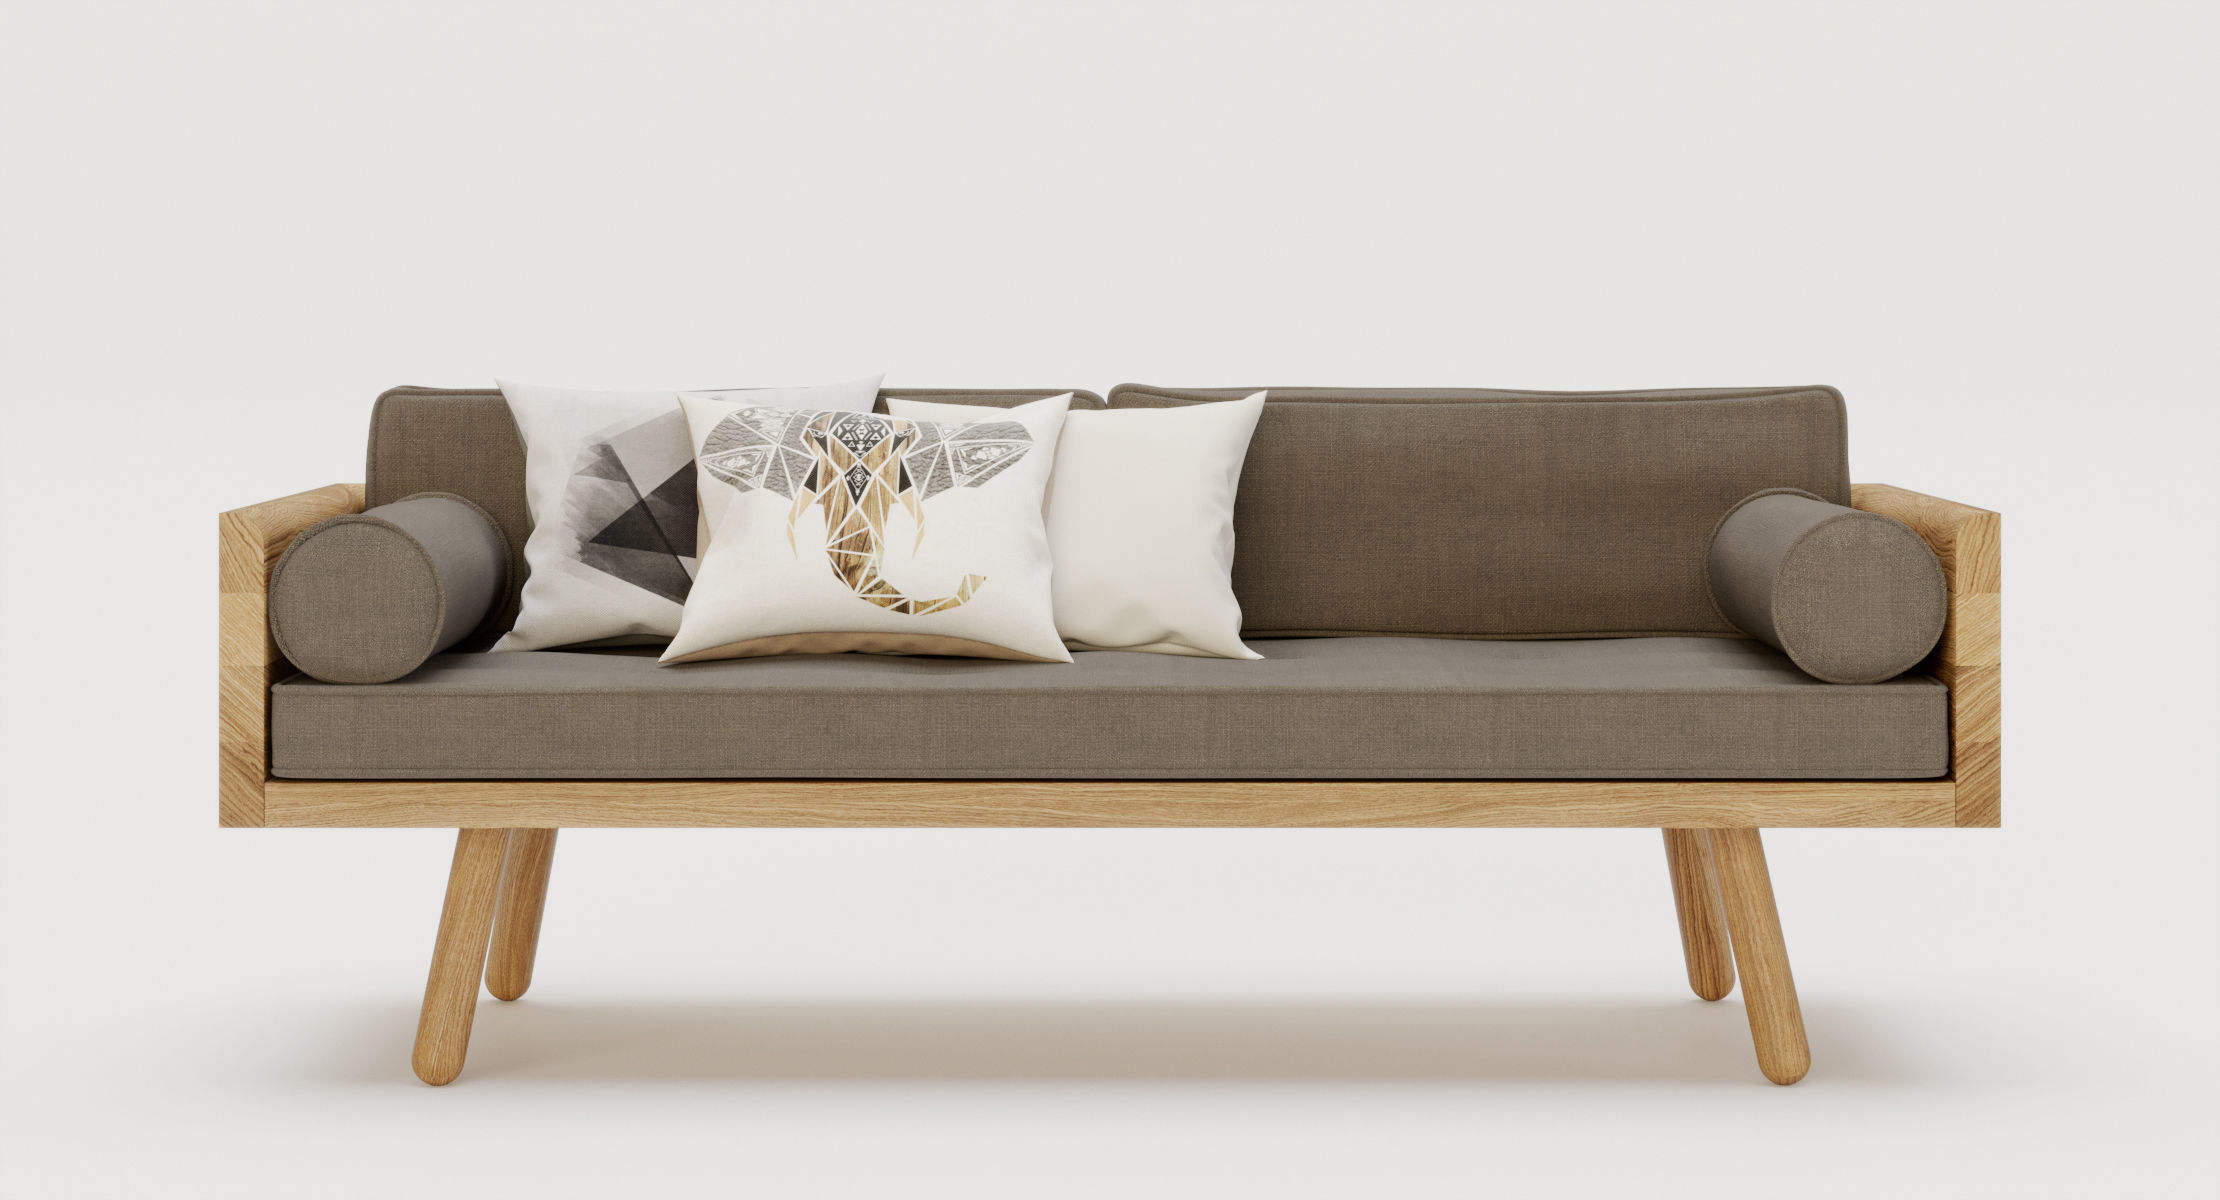 country modern furniture. Furniture - Another Country Modern Sofa C4d Native Corona 3d Model